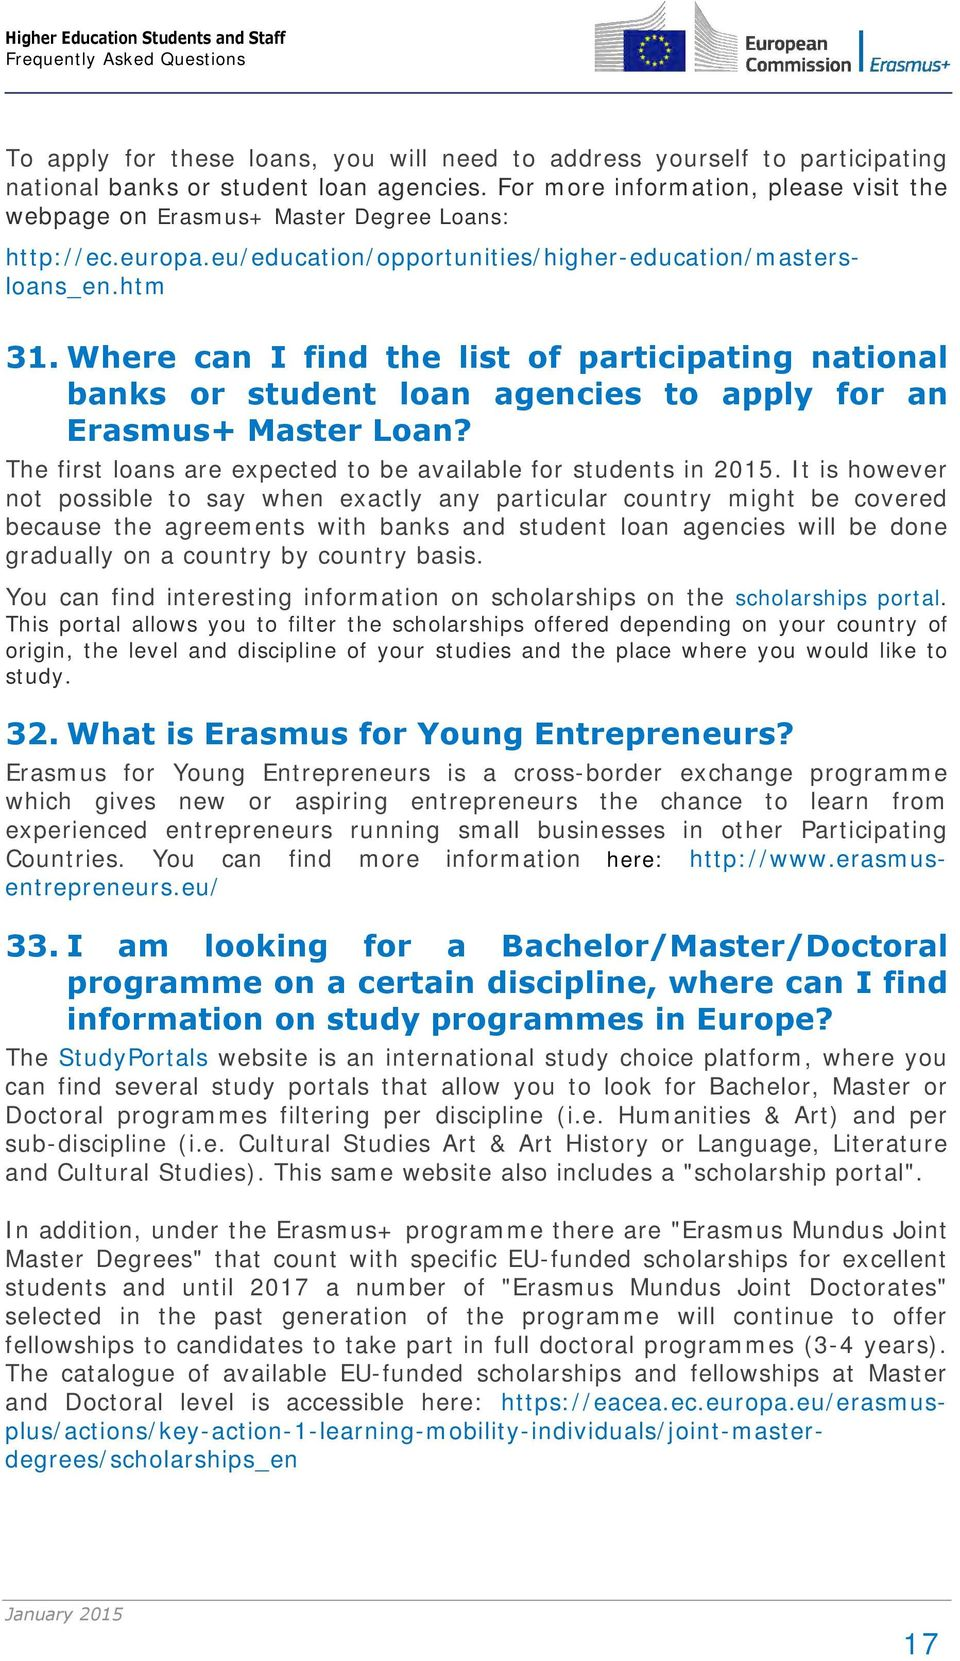 Where can I find the list of participating national banks or student loan agencies to apply for an Erasmus+ Master Loan? The first loans are expected to be available for students in 2015.